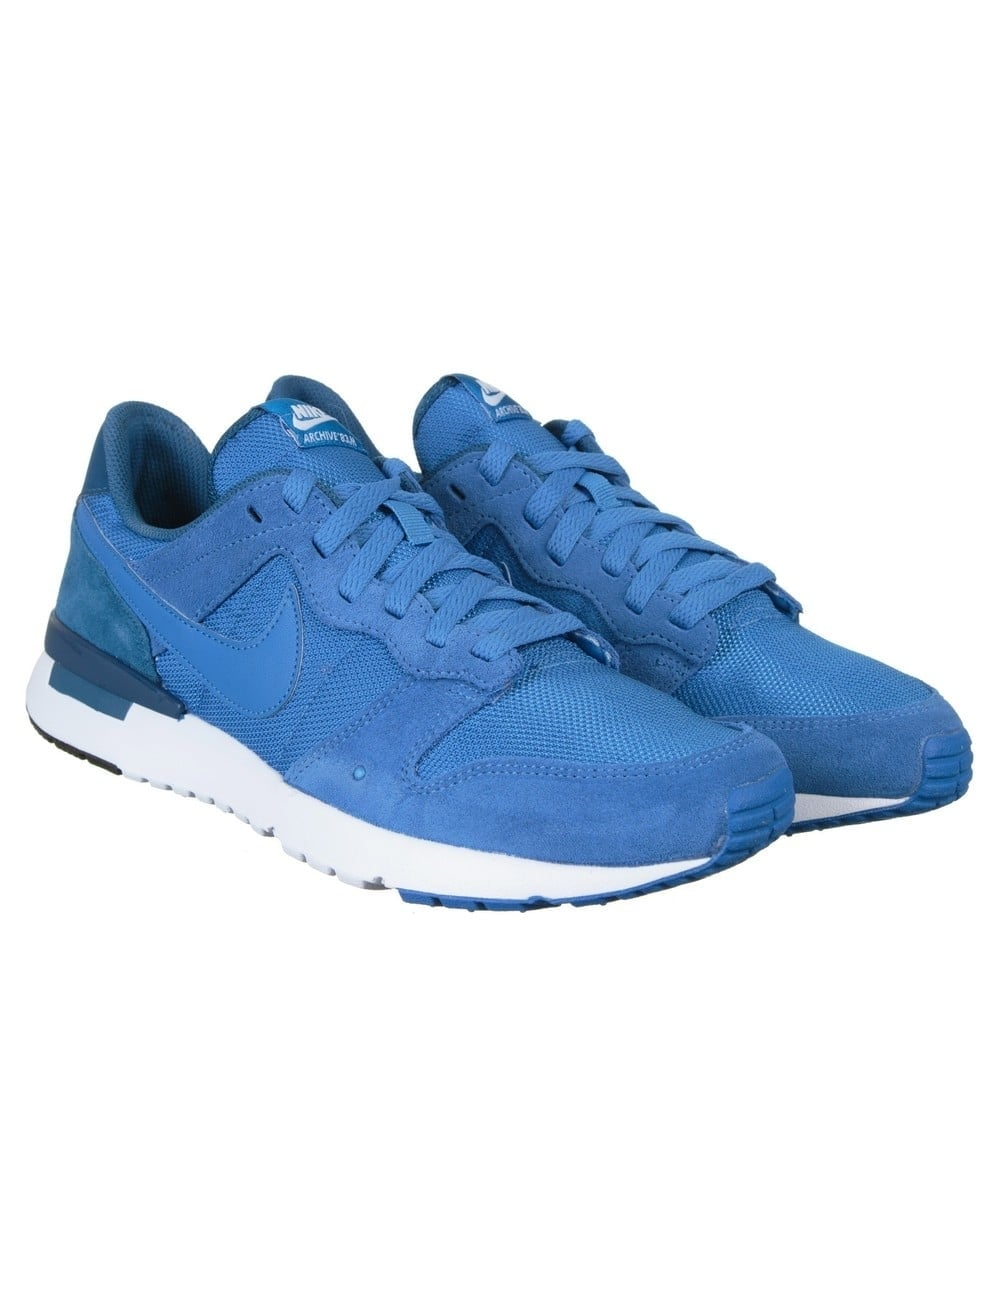 d6e6bcda41af Nike Archive  83.M Trainers - FNTN Blue - Footwear from Fat Buddha ...